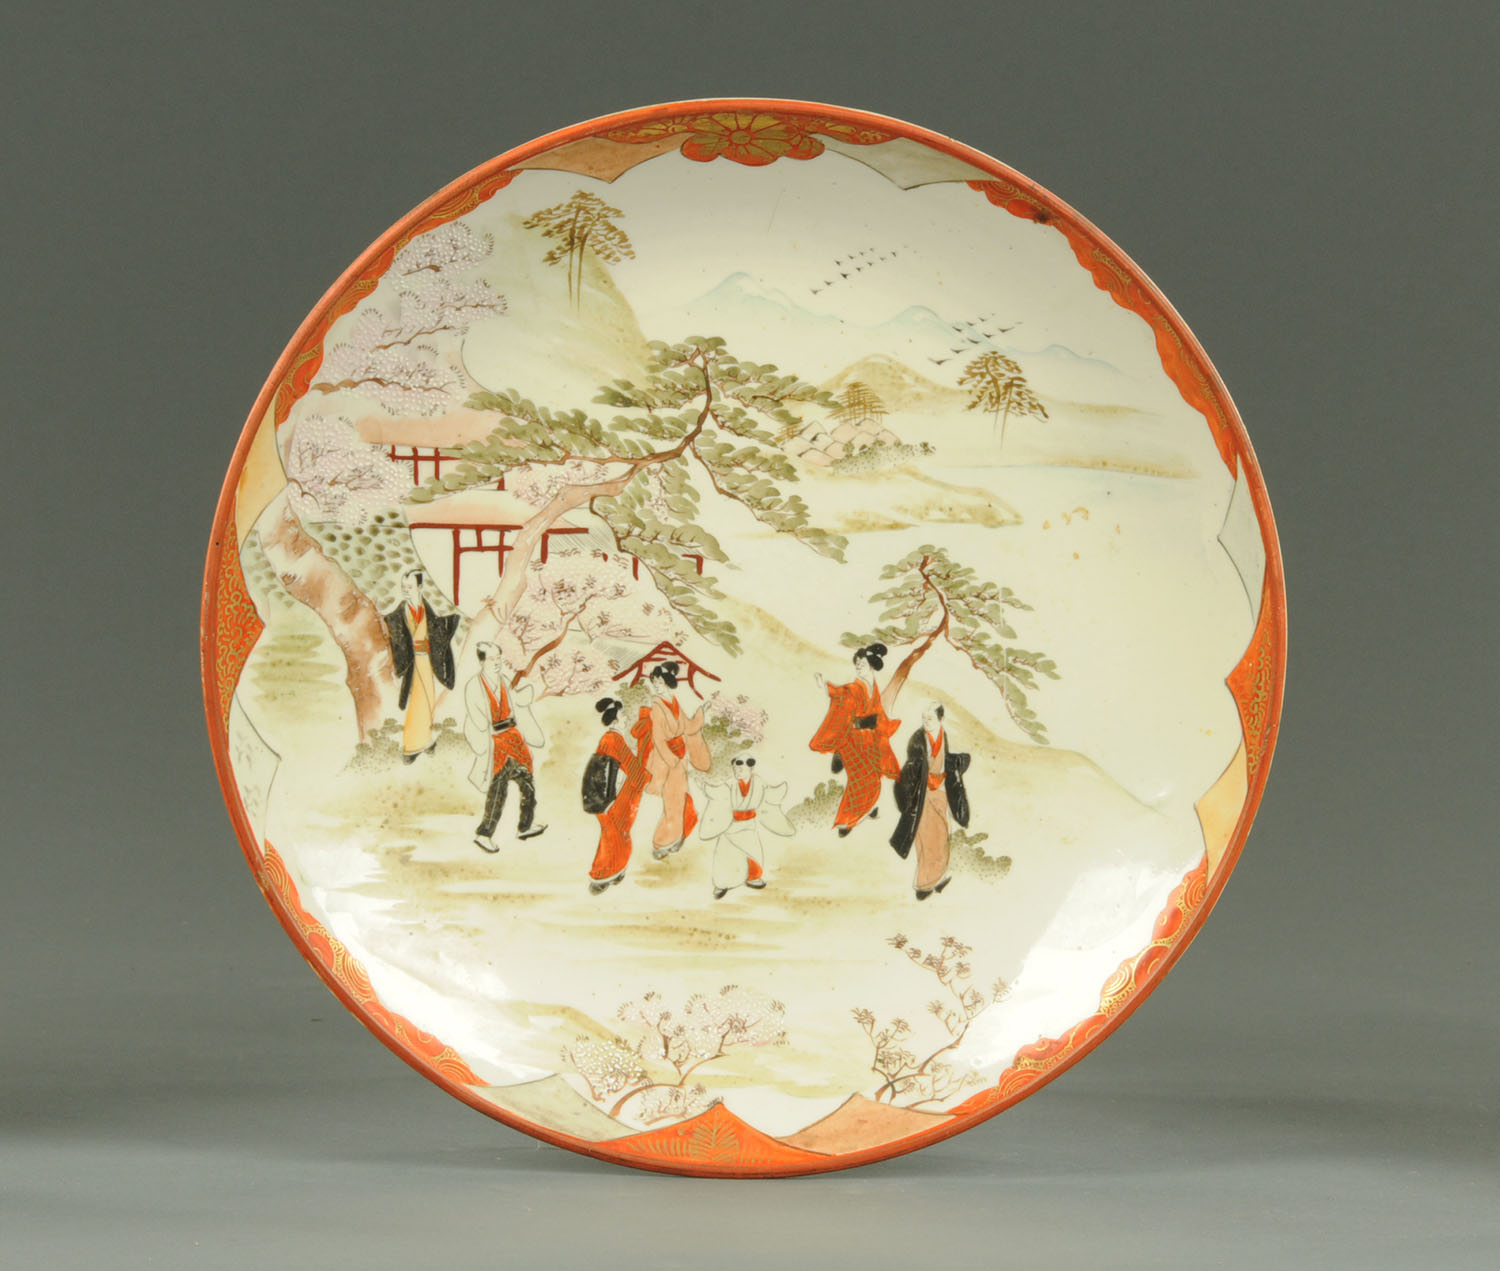 Lot 12 - An early 20th century Kutani plate, decorated in typical Kutani colours. Diameter 32 cm.